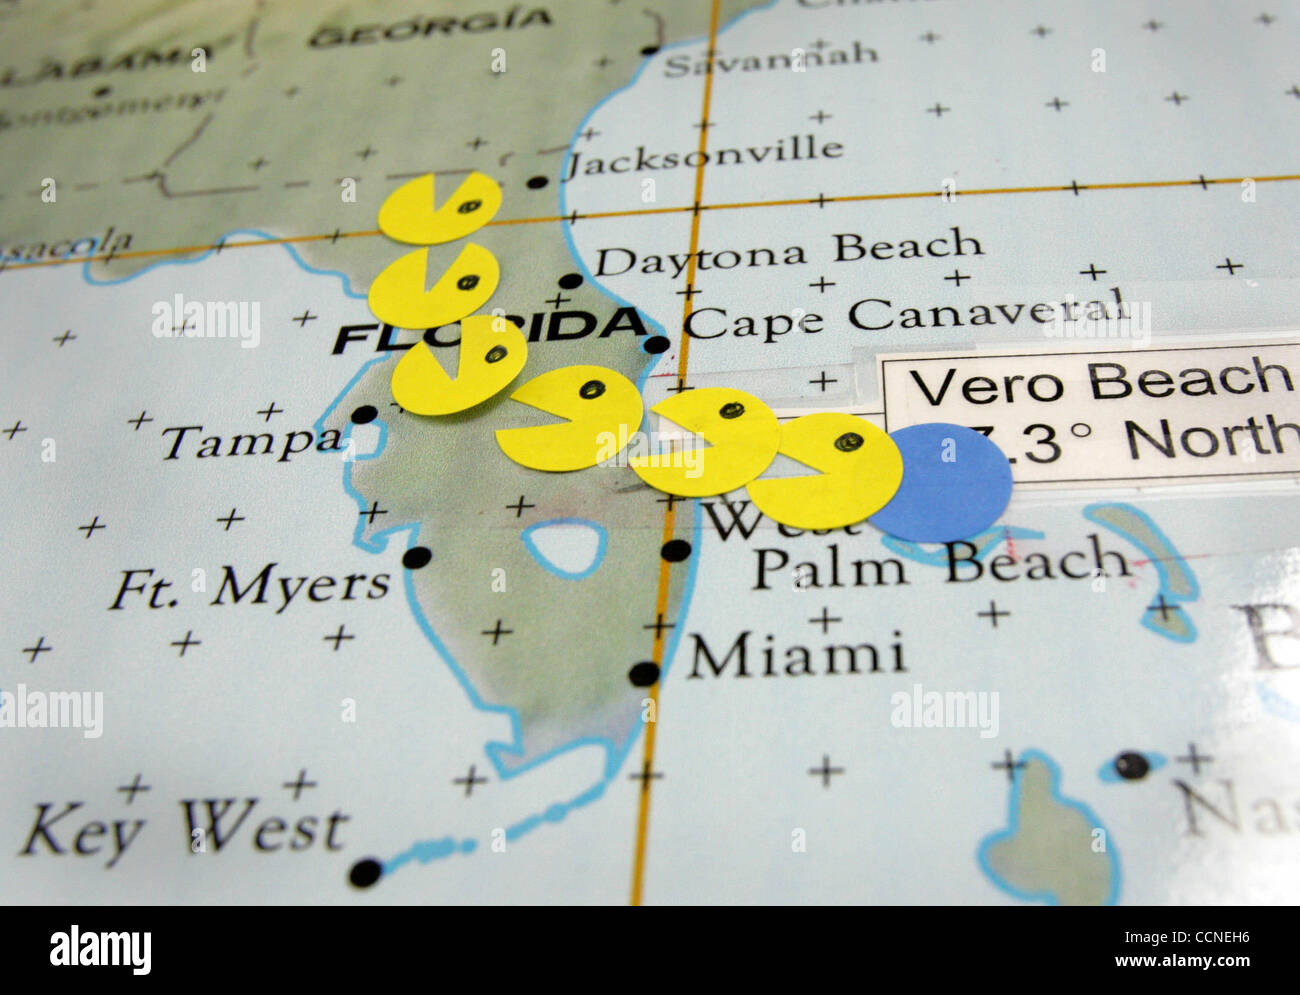 092904 Hur Jeanne Vero Beach Fl Ms Pacman Marks The Path Of Stock Photo Alamy